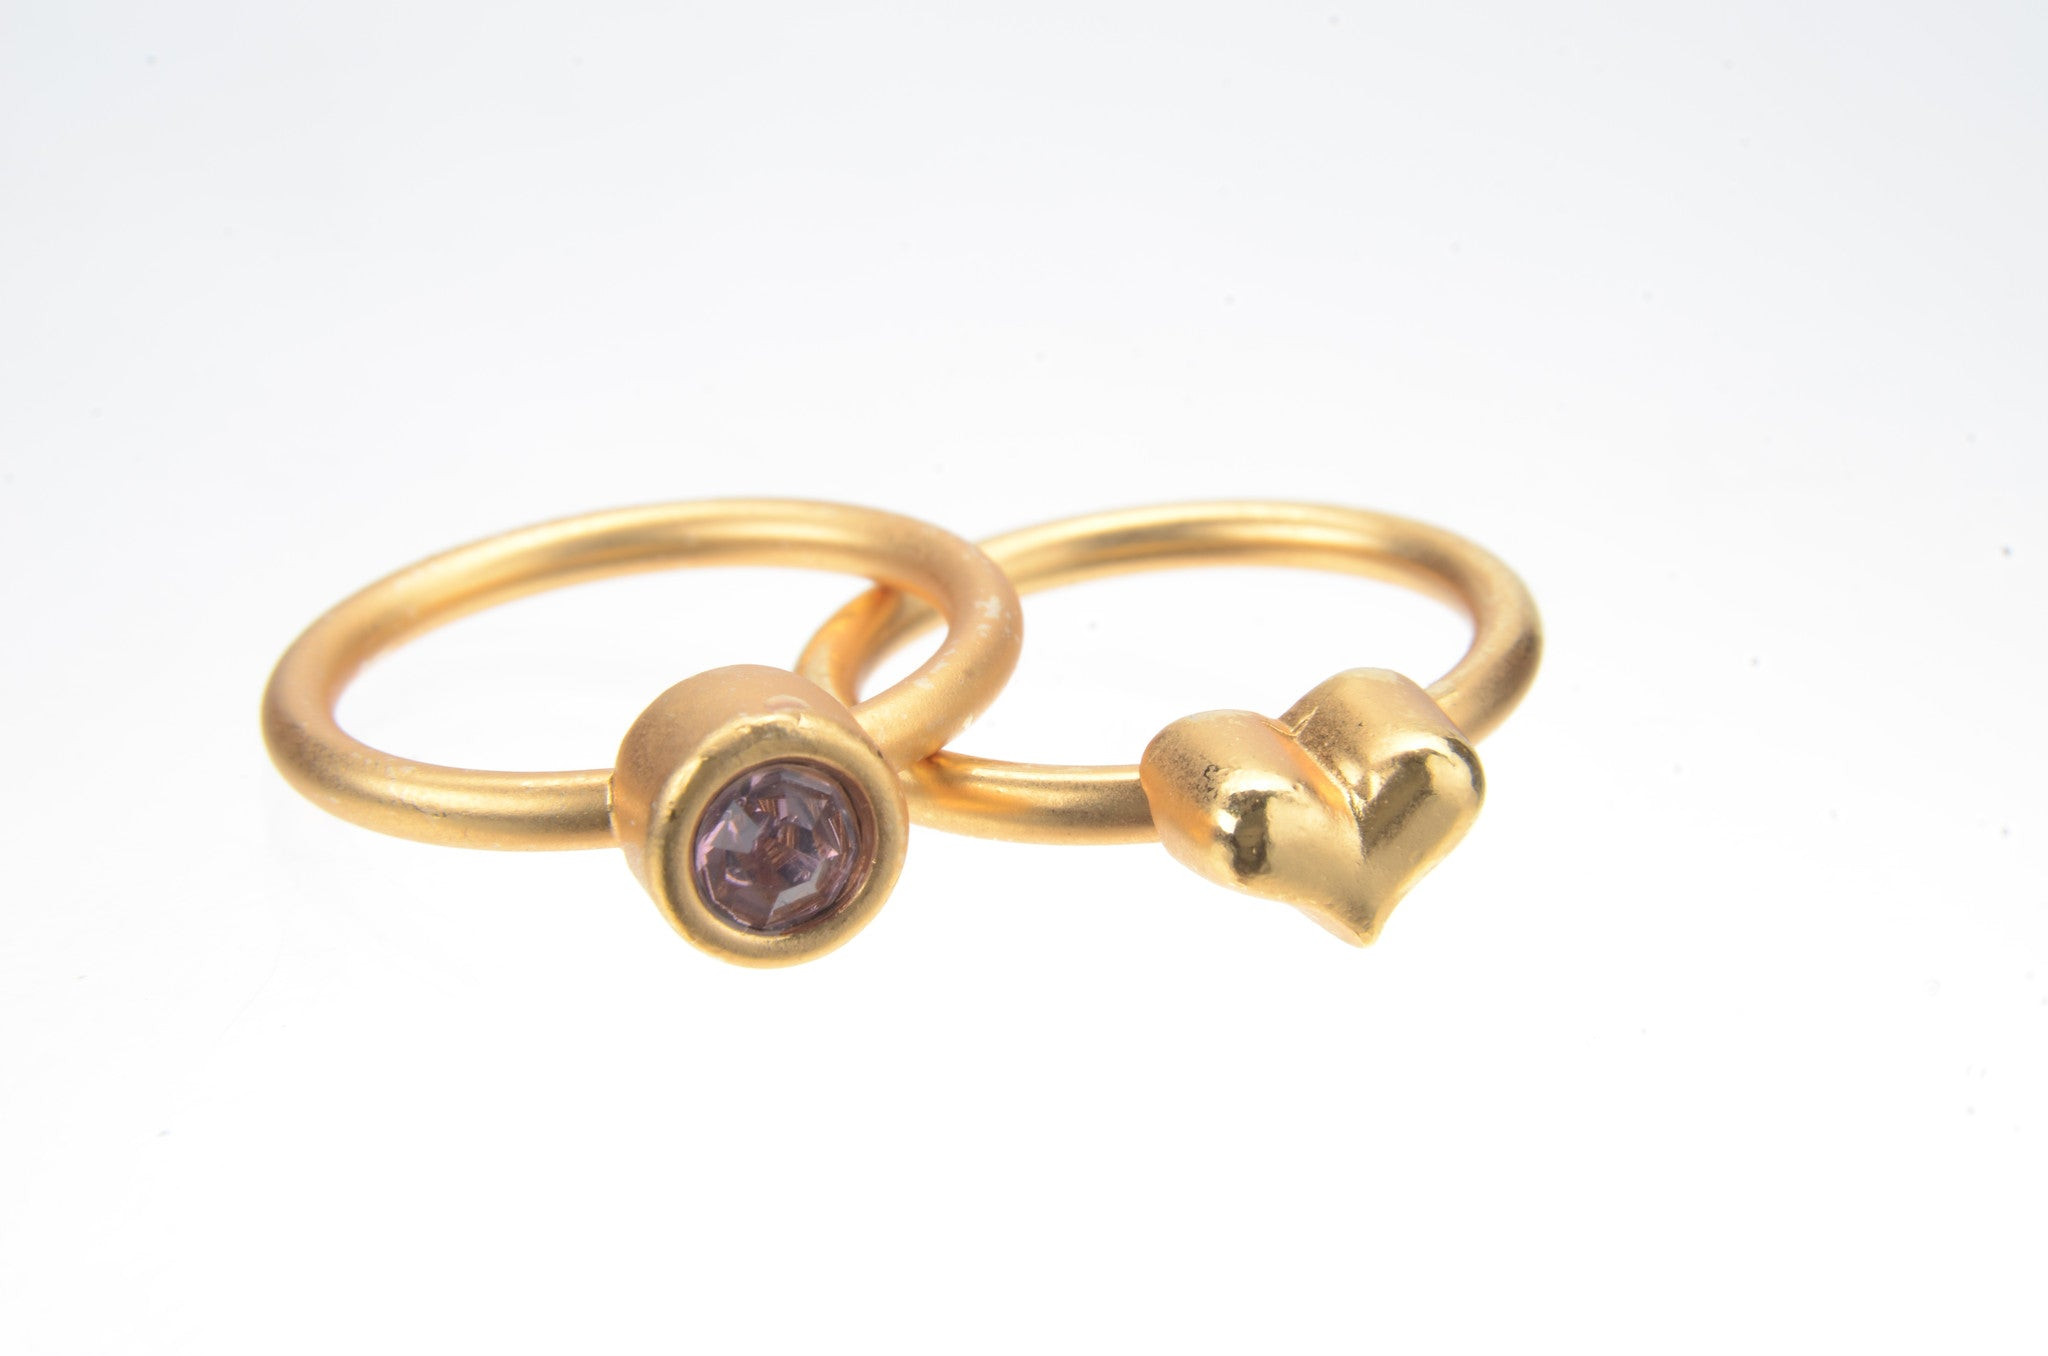 June Alexandrite Birthstone Ring Set - Whitney Howard Designs